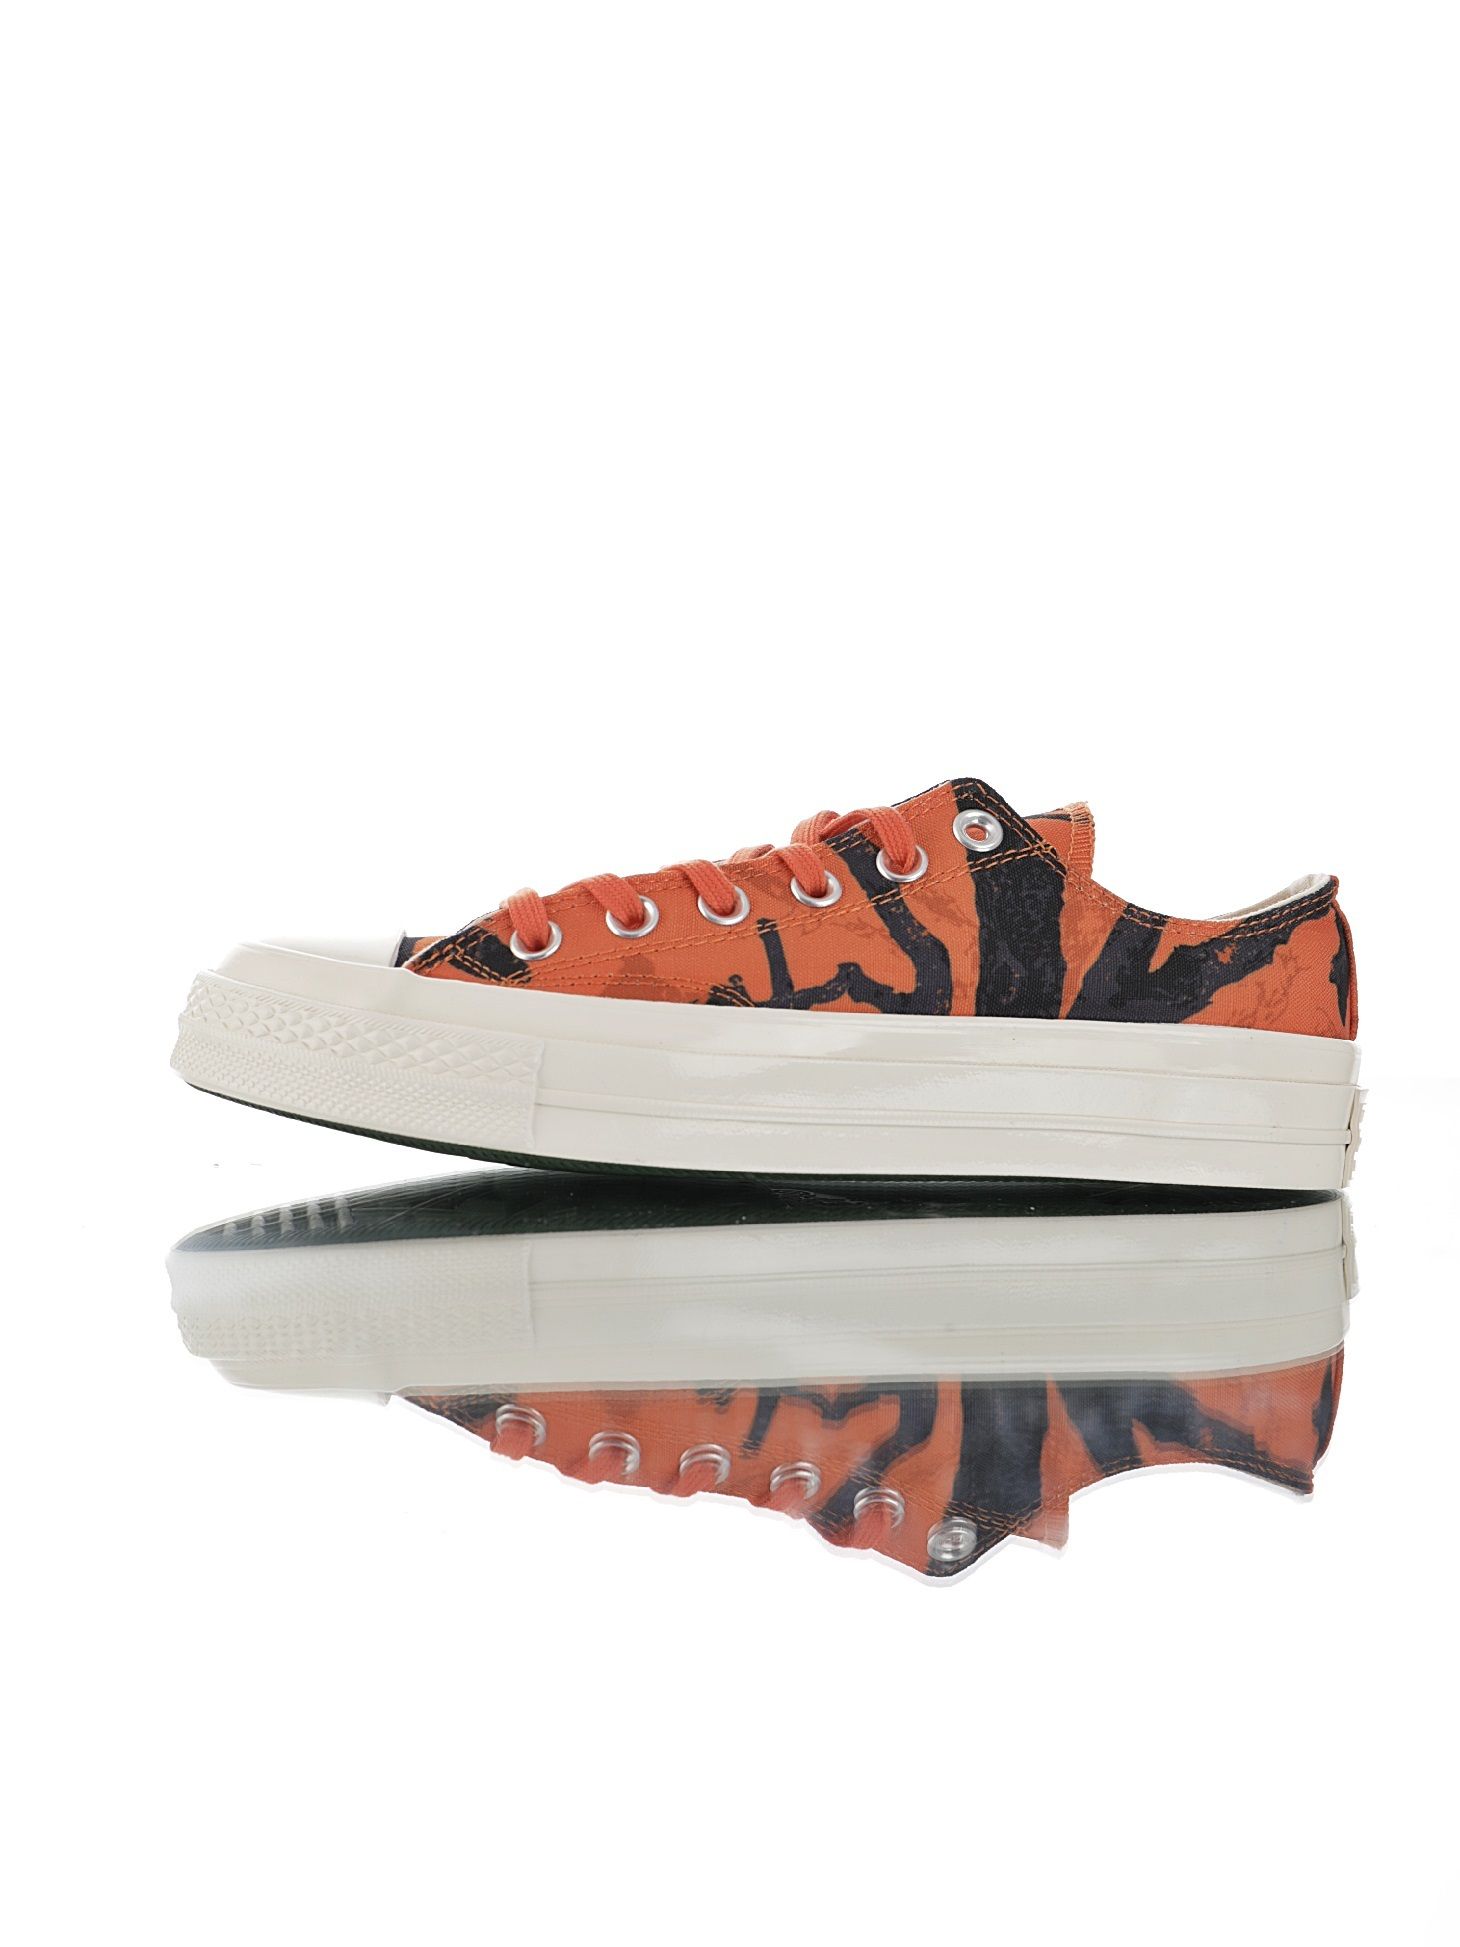 "Carhartt WIP x 匡威Converse Chuck Taylor All Star 1970 OX""Orange Tree Camo&qu"